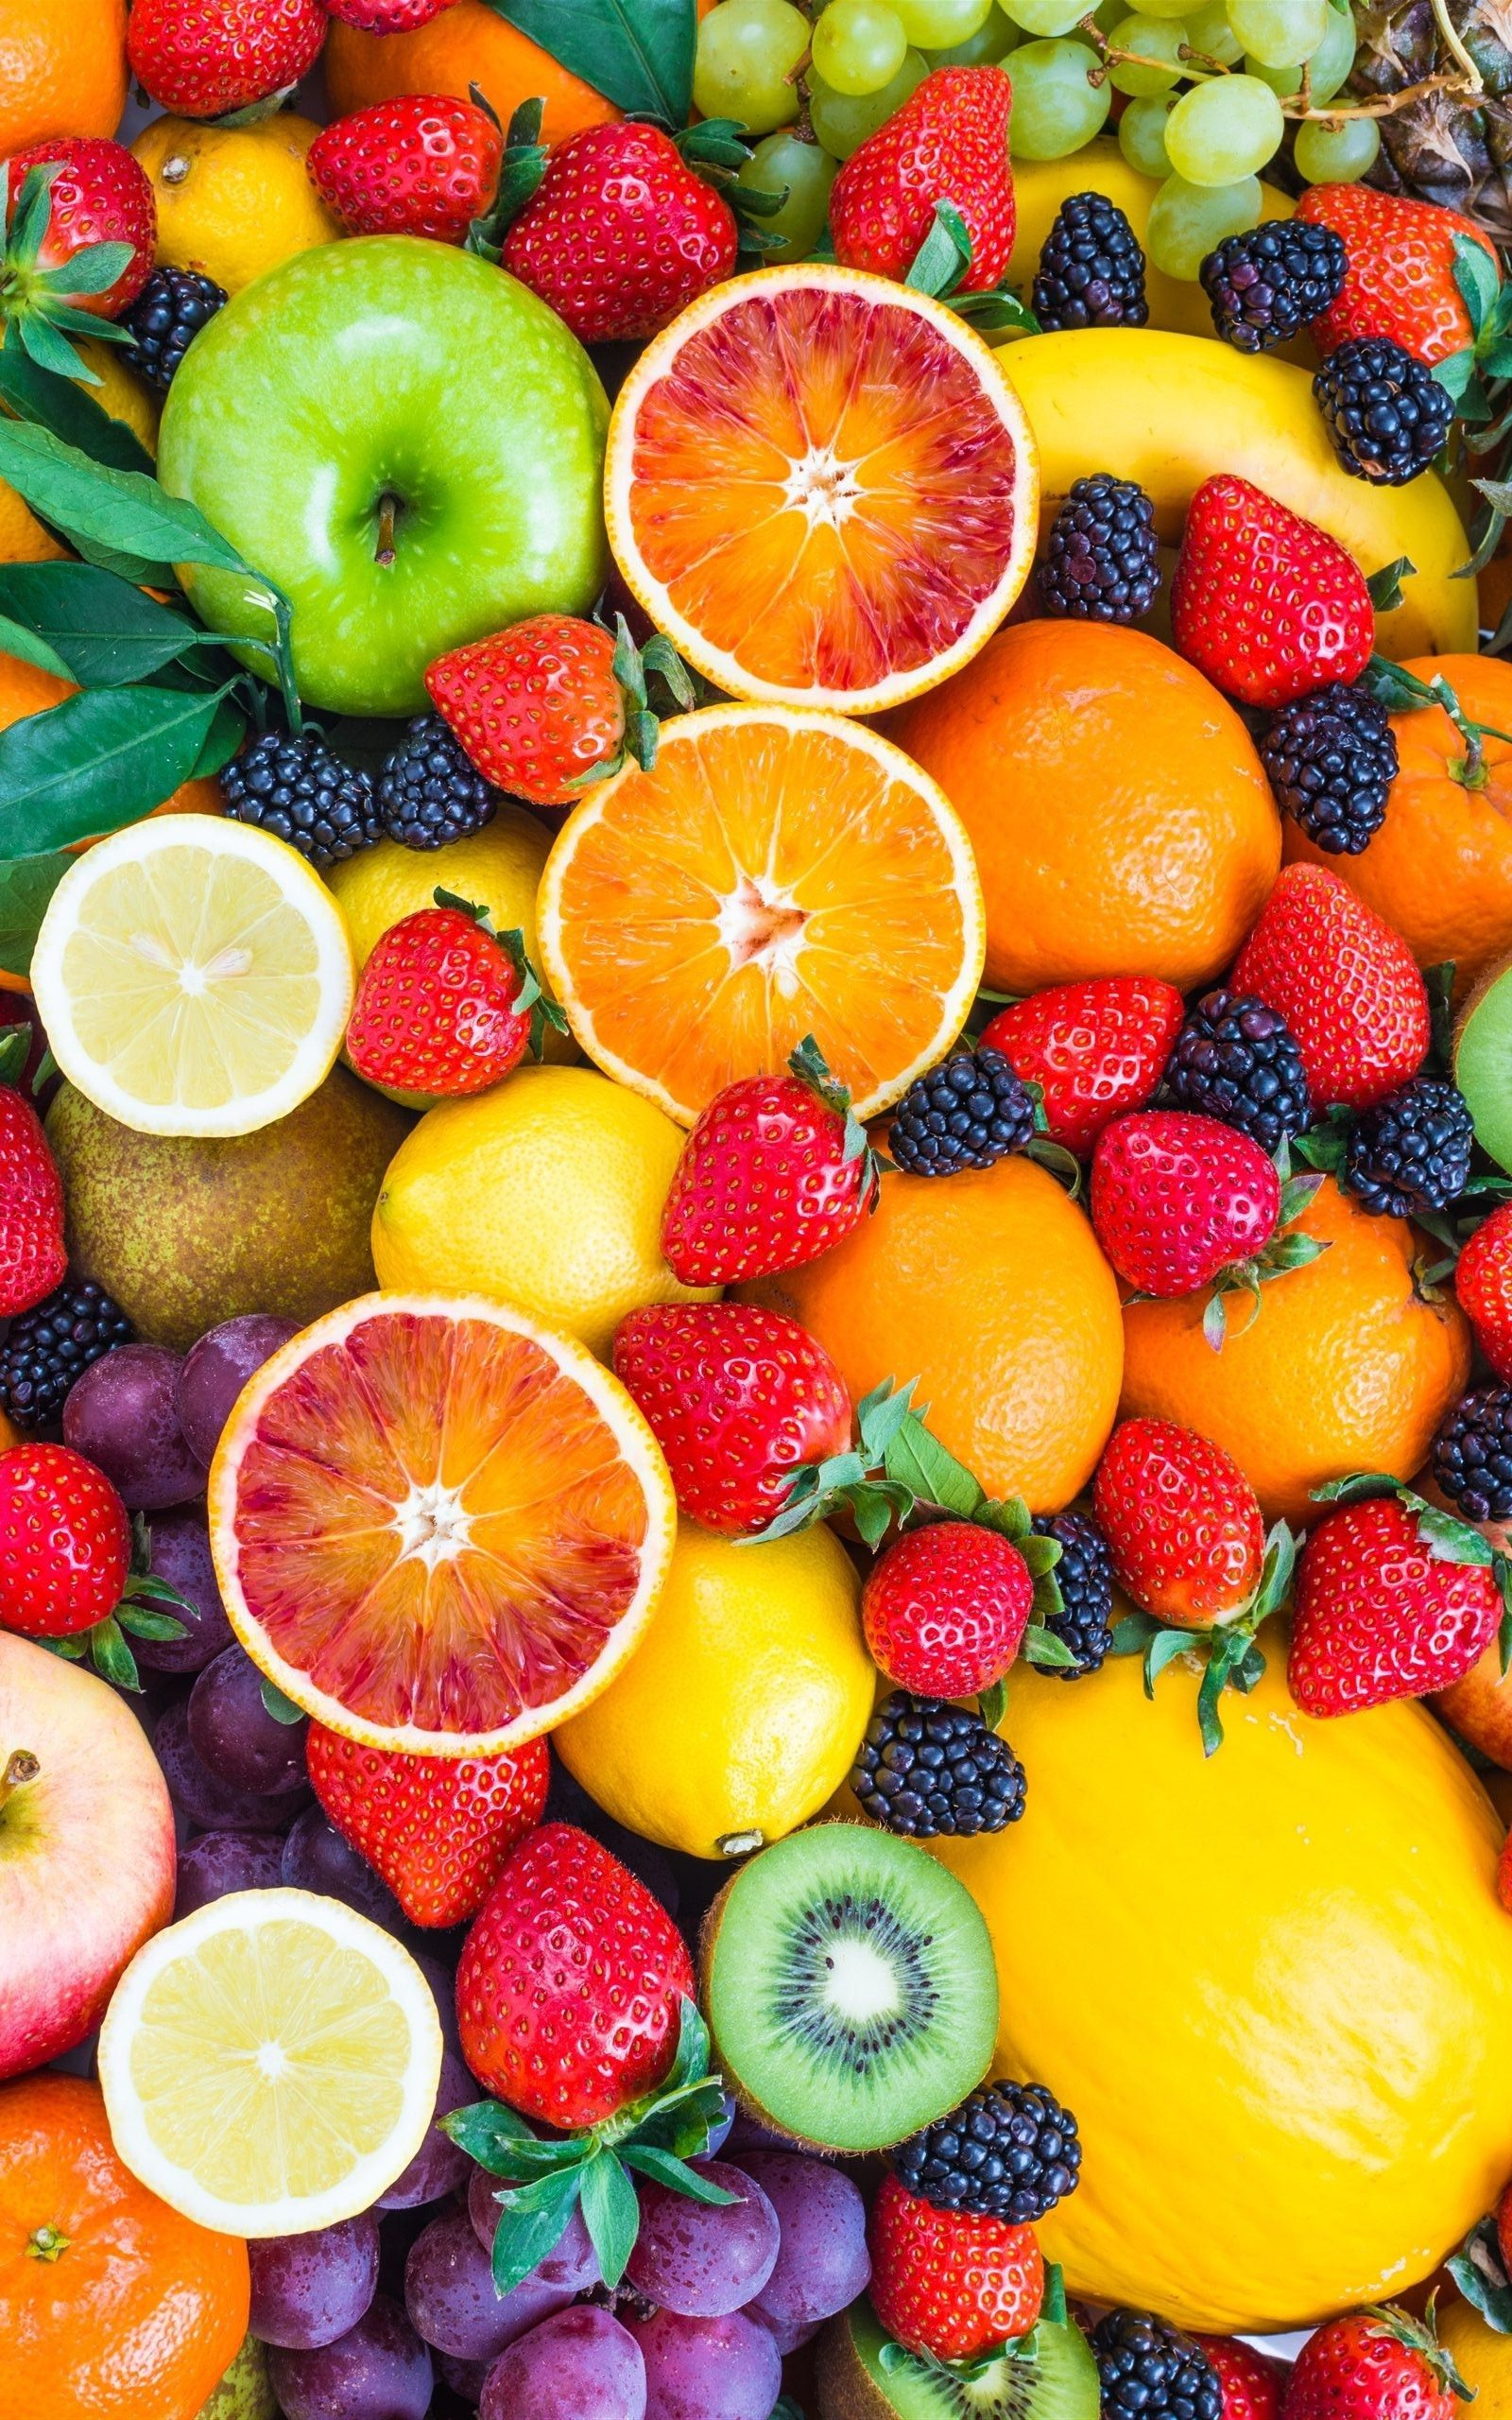 Best Fresh Fruit Wallpaper iPhone | iPhoneWallpapers | Food wallpaper, Fruit, Wallpaper